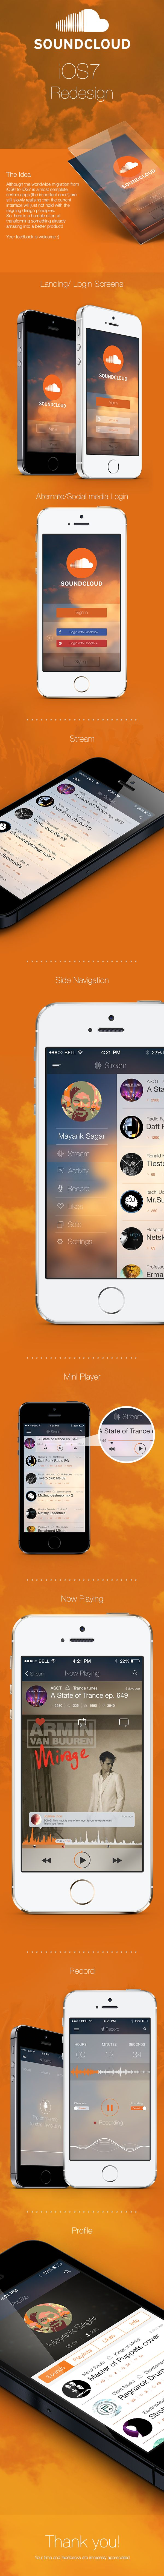 Soundcloud app iOS7 redesign by Mayank Sagar, via Behance